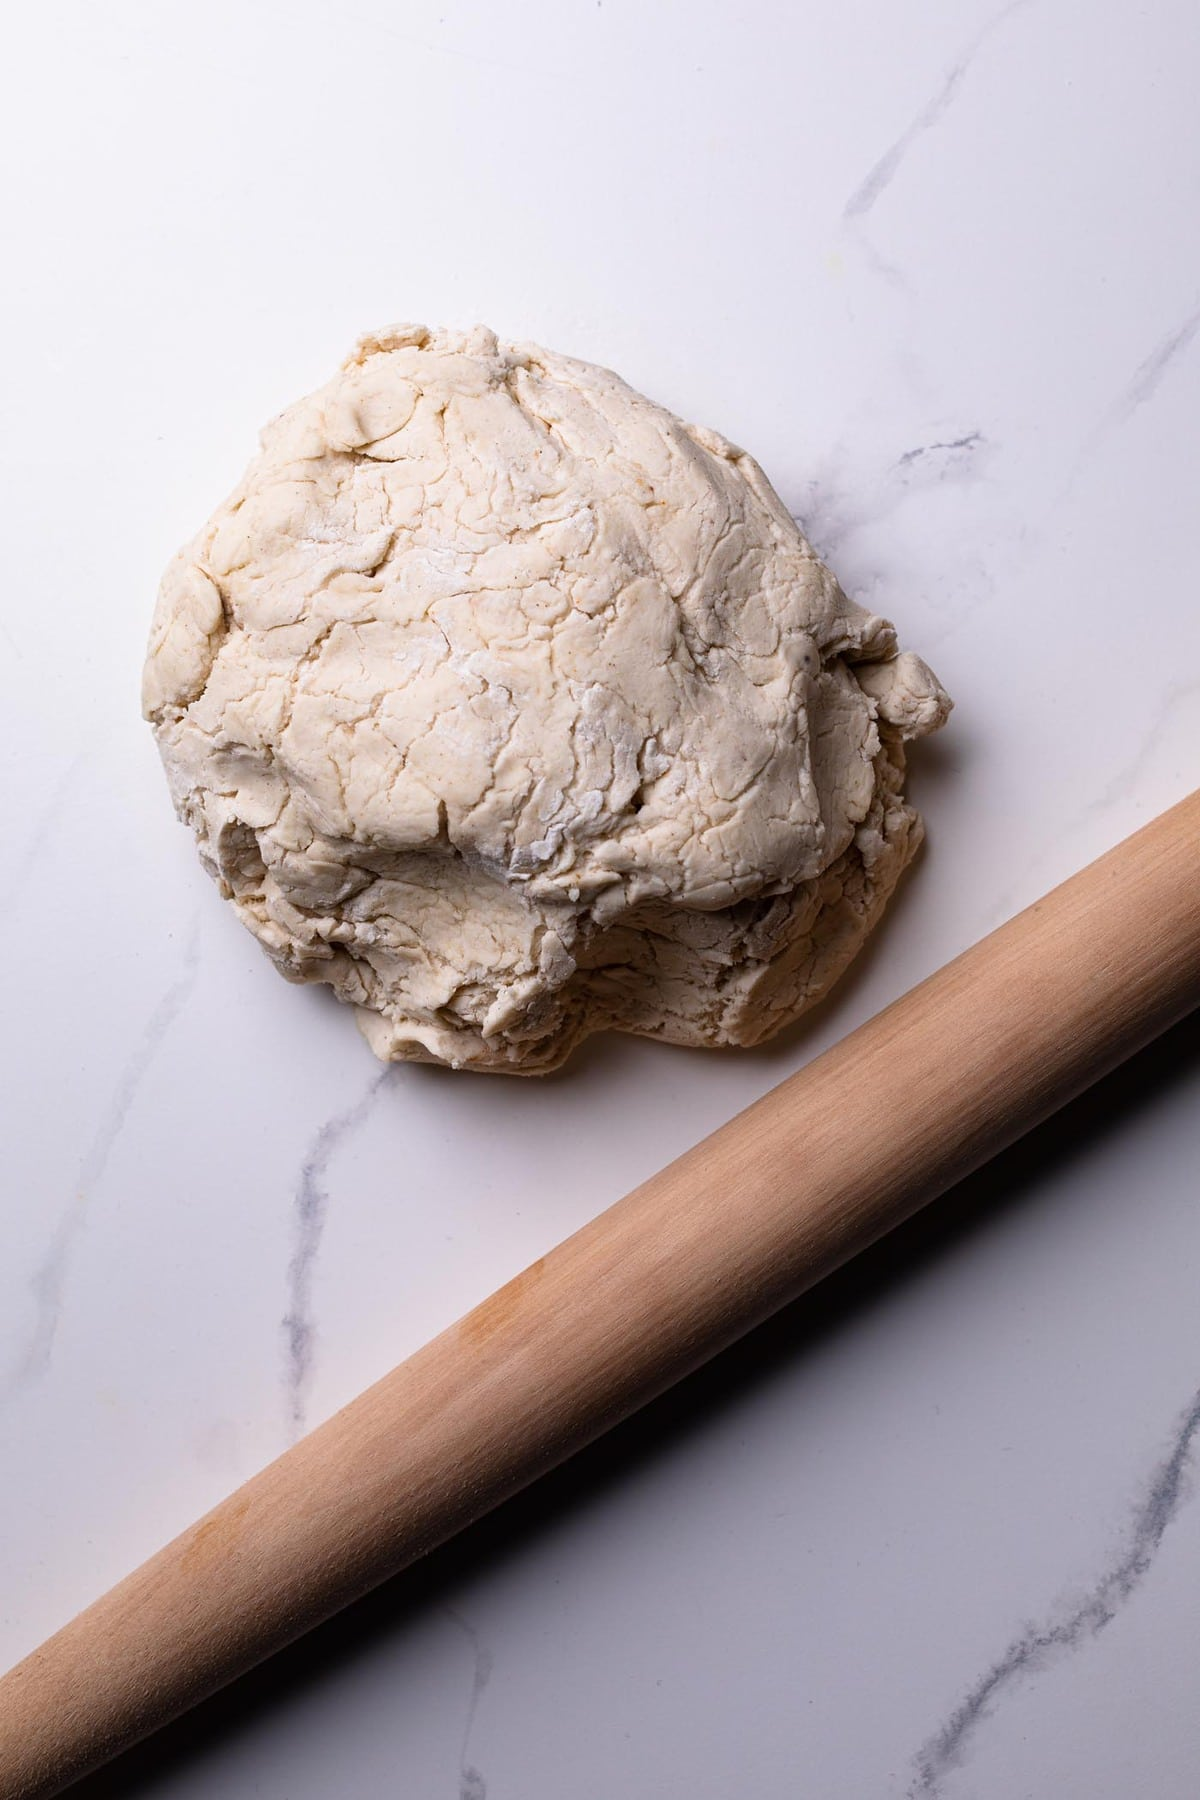 Easy Homemade Gluten-Free Pizza Crust in a ball on a counter with a wooden rolling pin